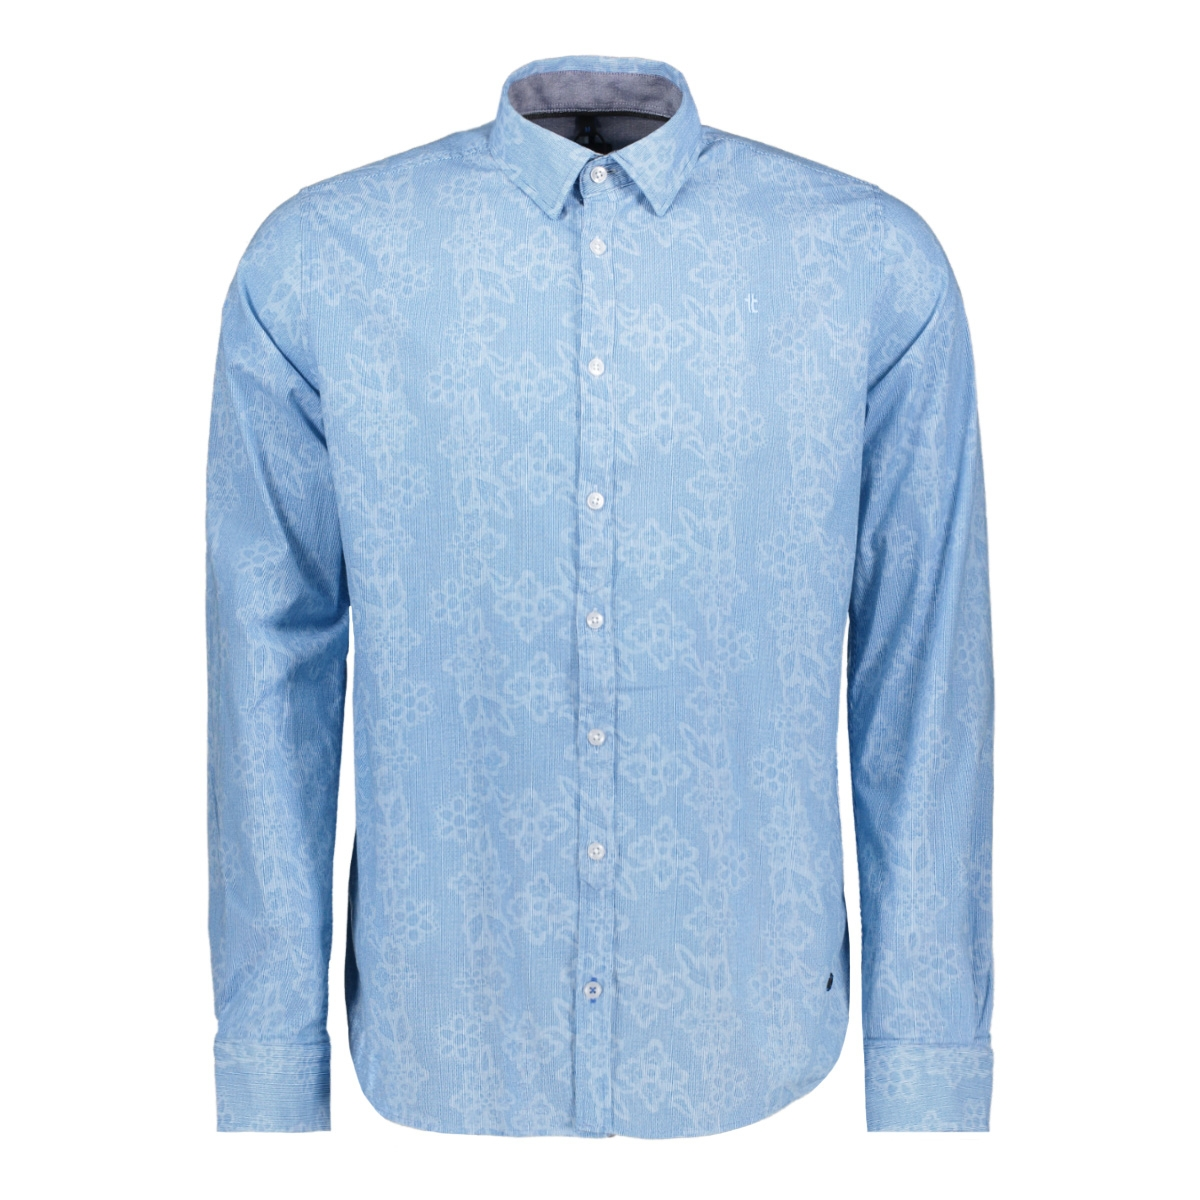 shirt 1901 2206 m 1 twinlife overhemd 6402 horizon blue